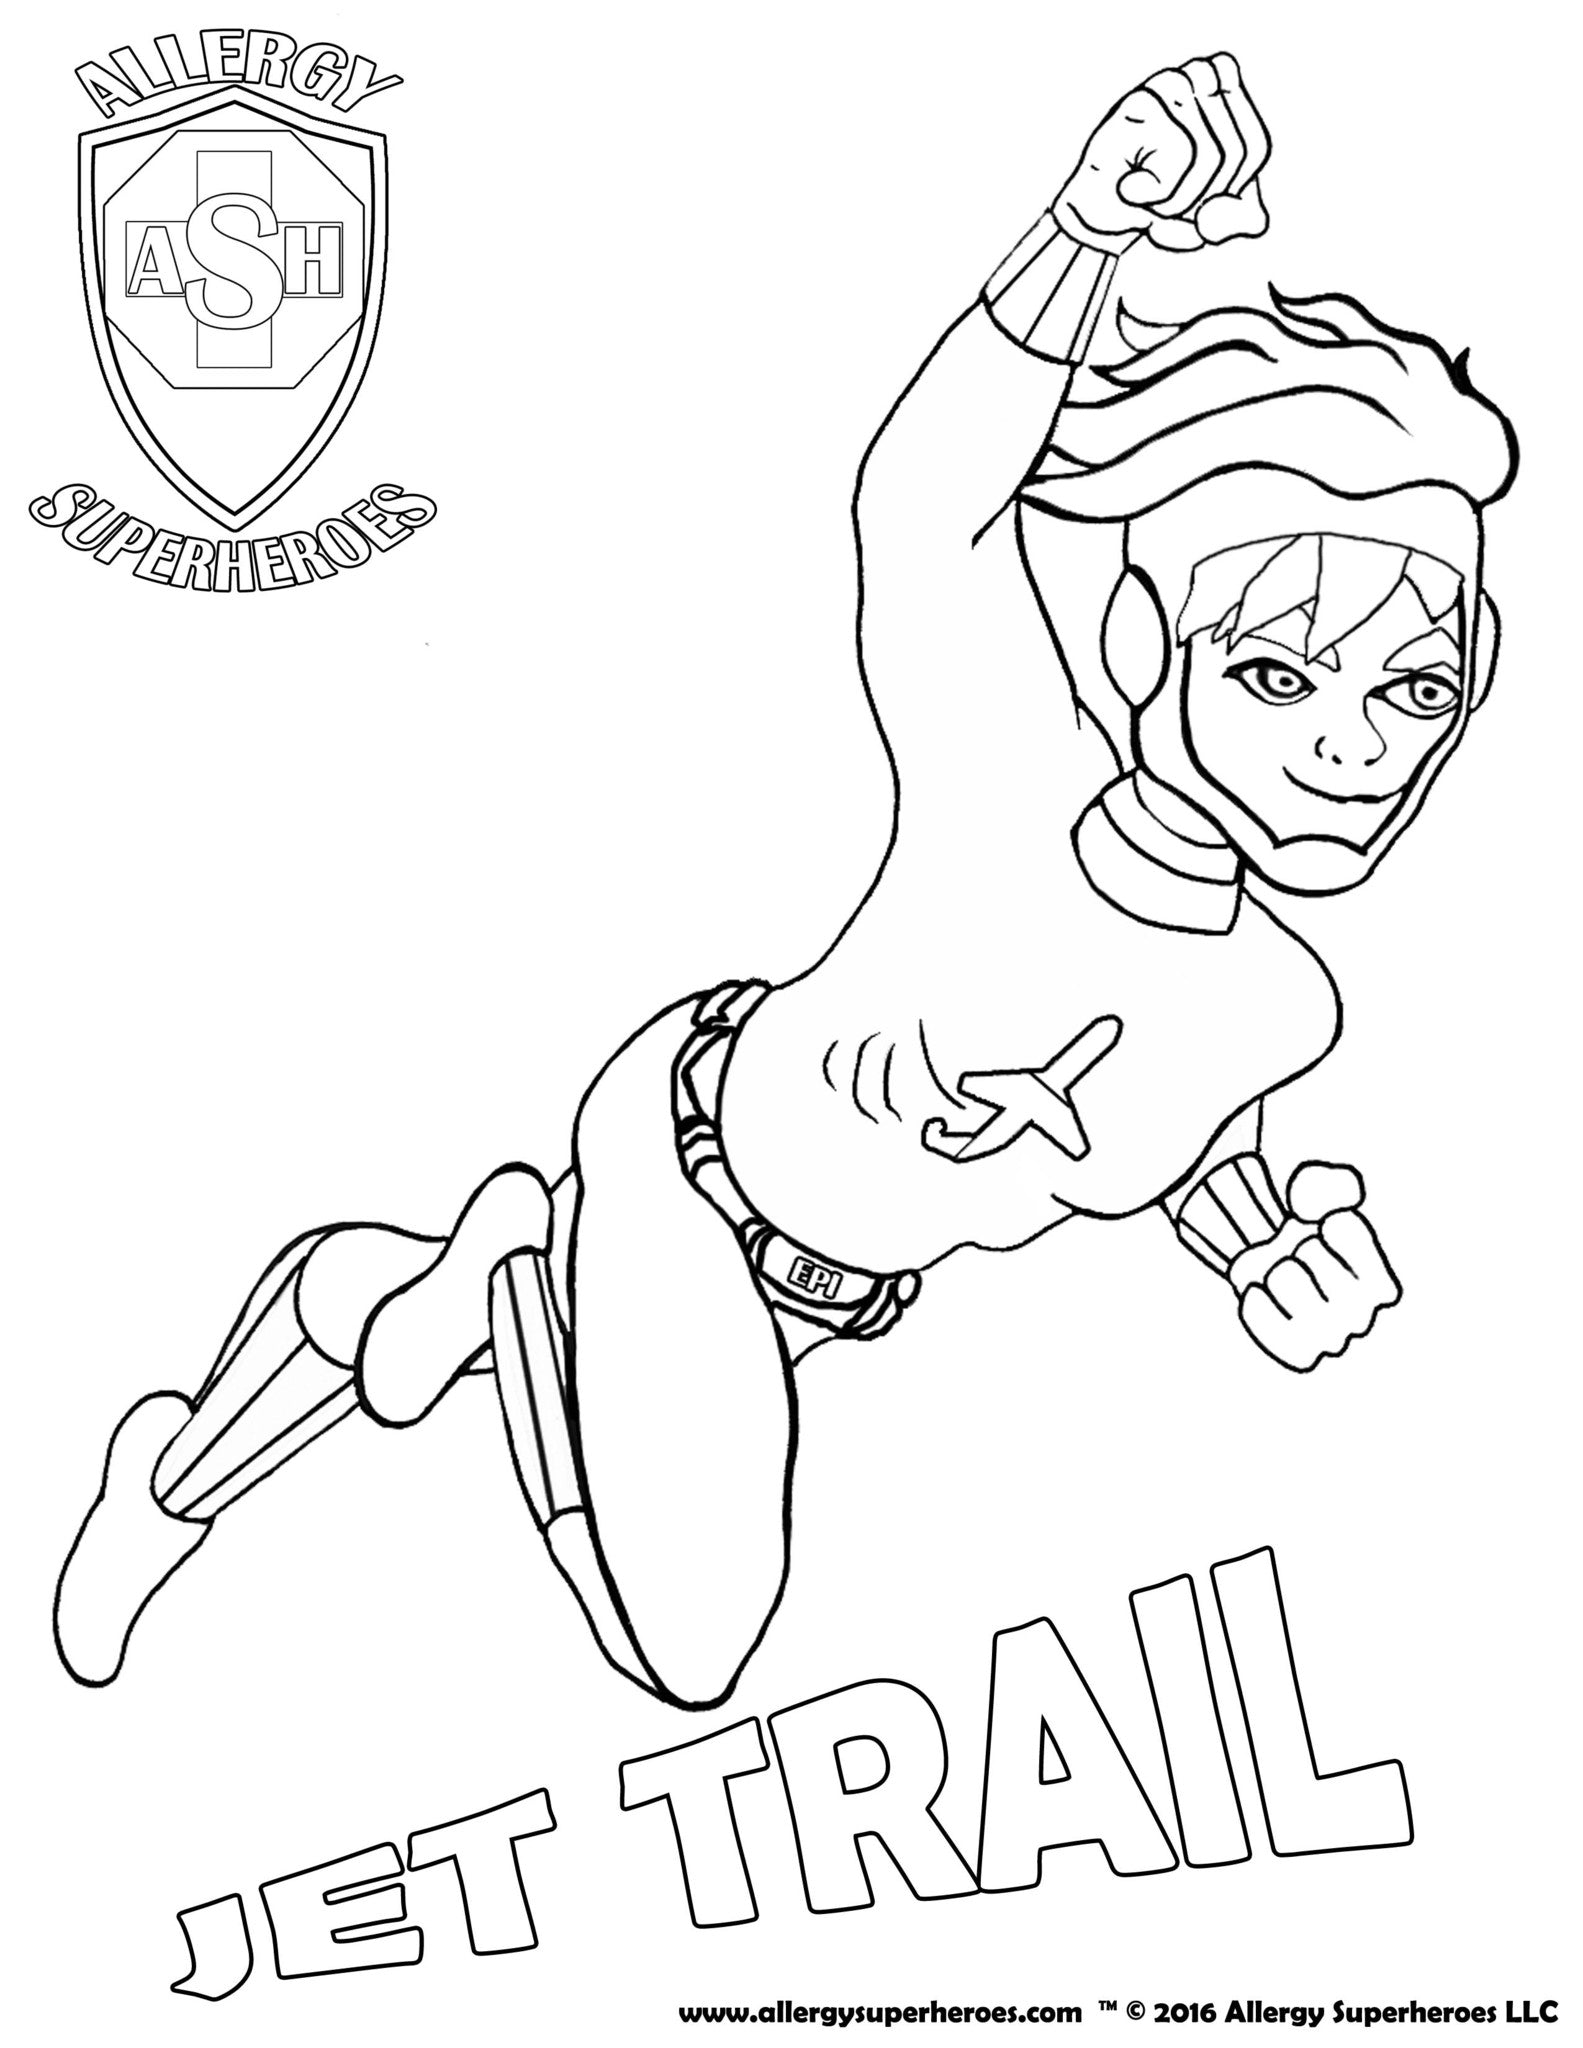 Jet Trail Allergy Superheroes Coloring Sheet